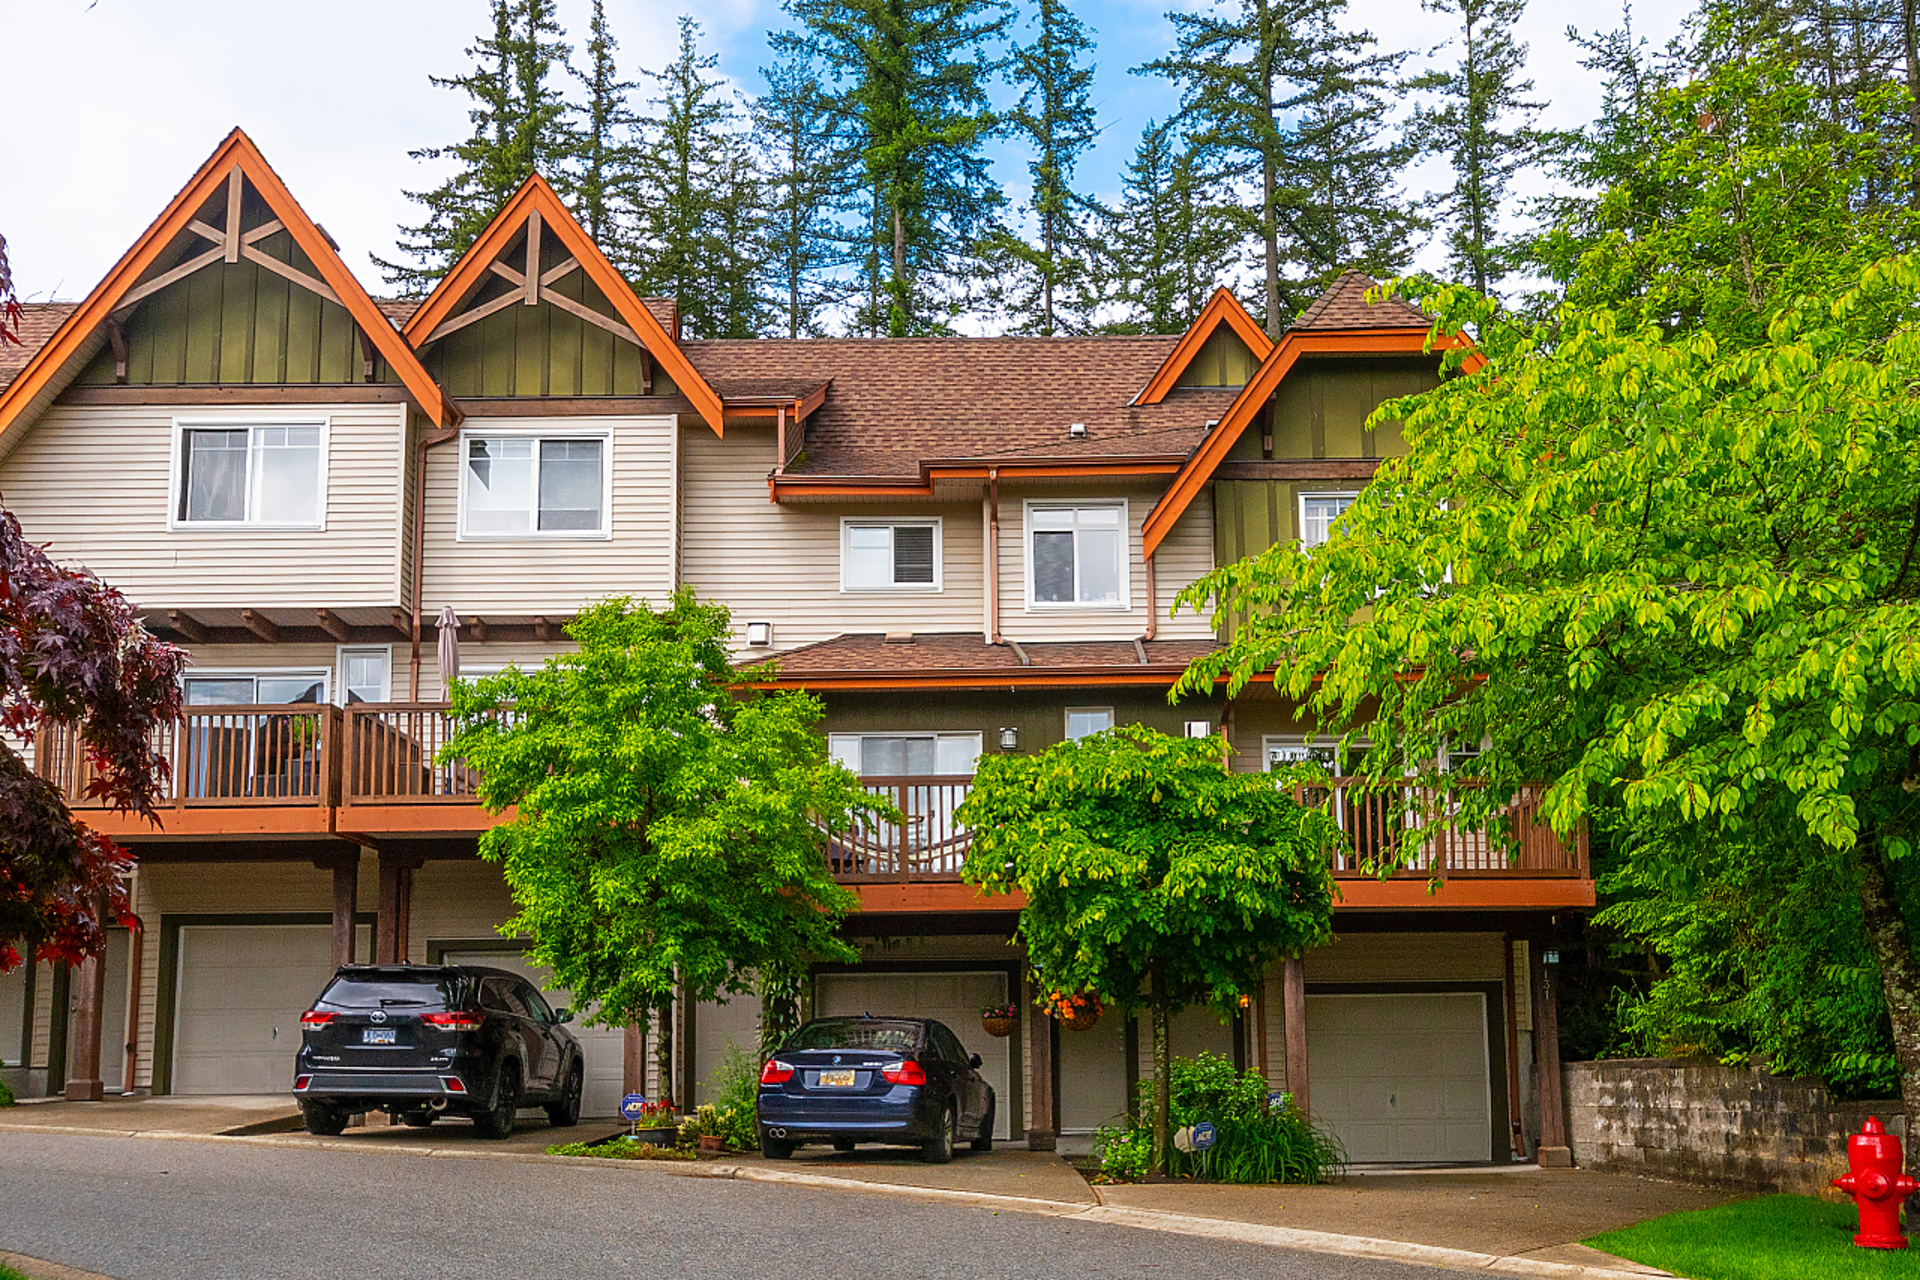 001 at 131 - 2000 Panorama Drive, Heritage Woods PM, Port Moody